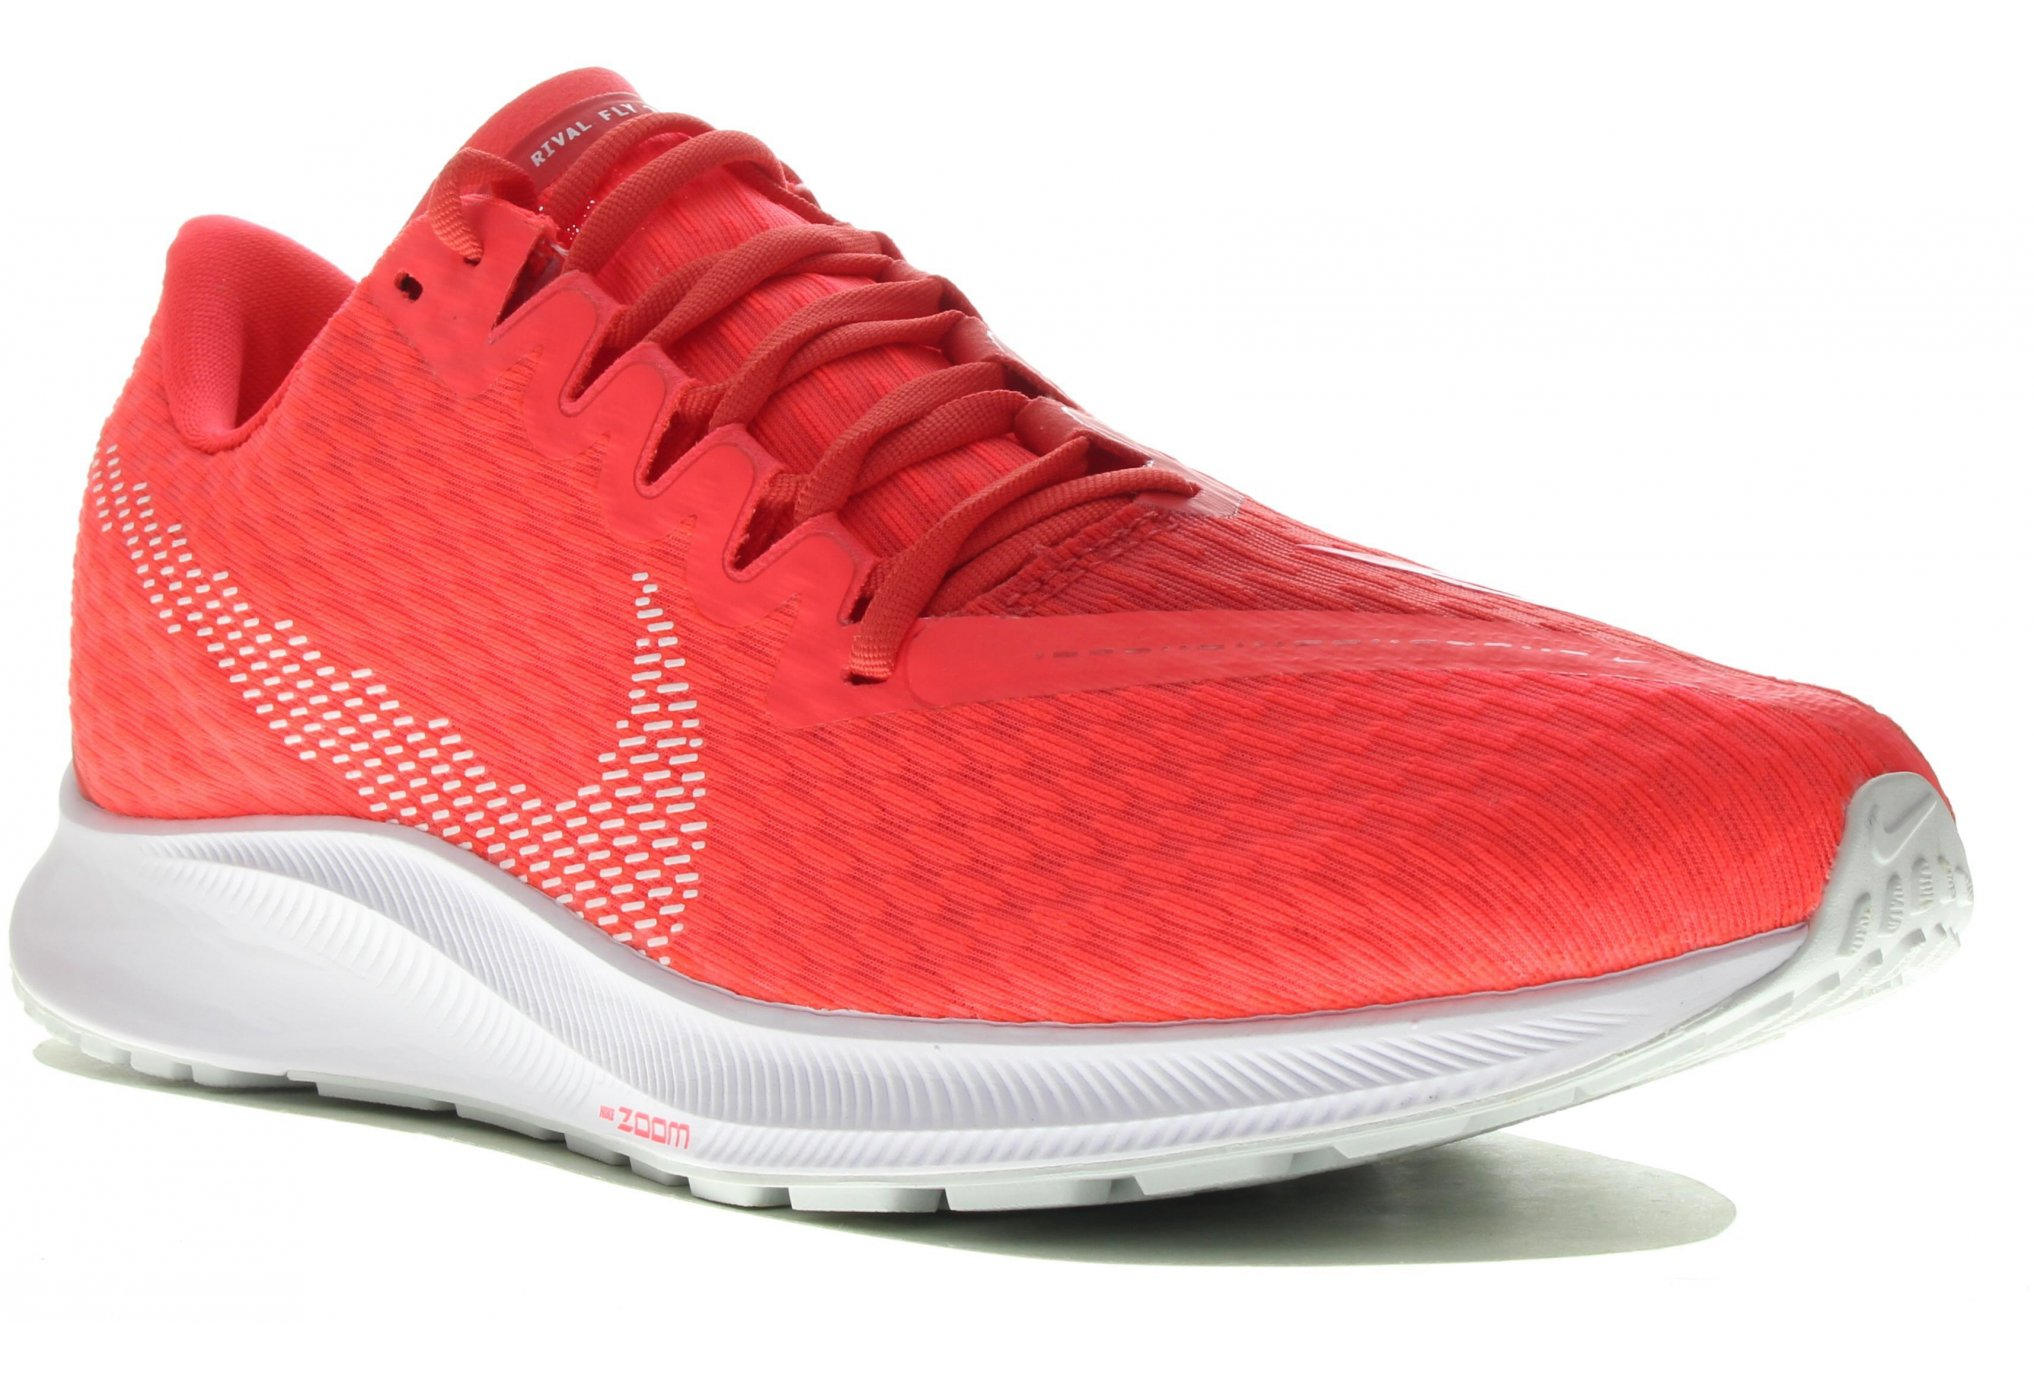 Nike Zoom Rival Fly 2 W Chaussures running femme